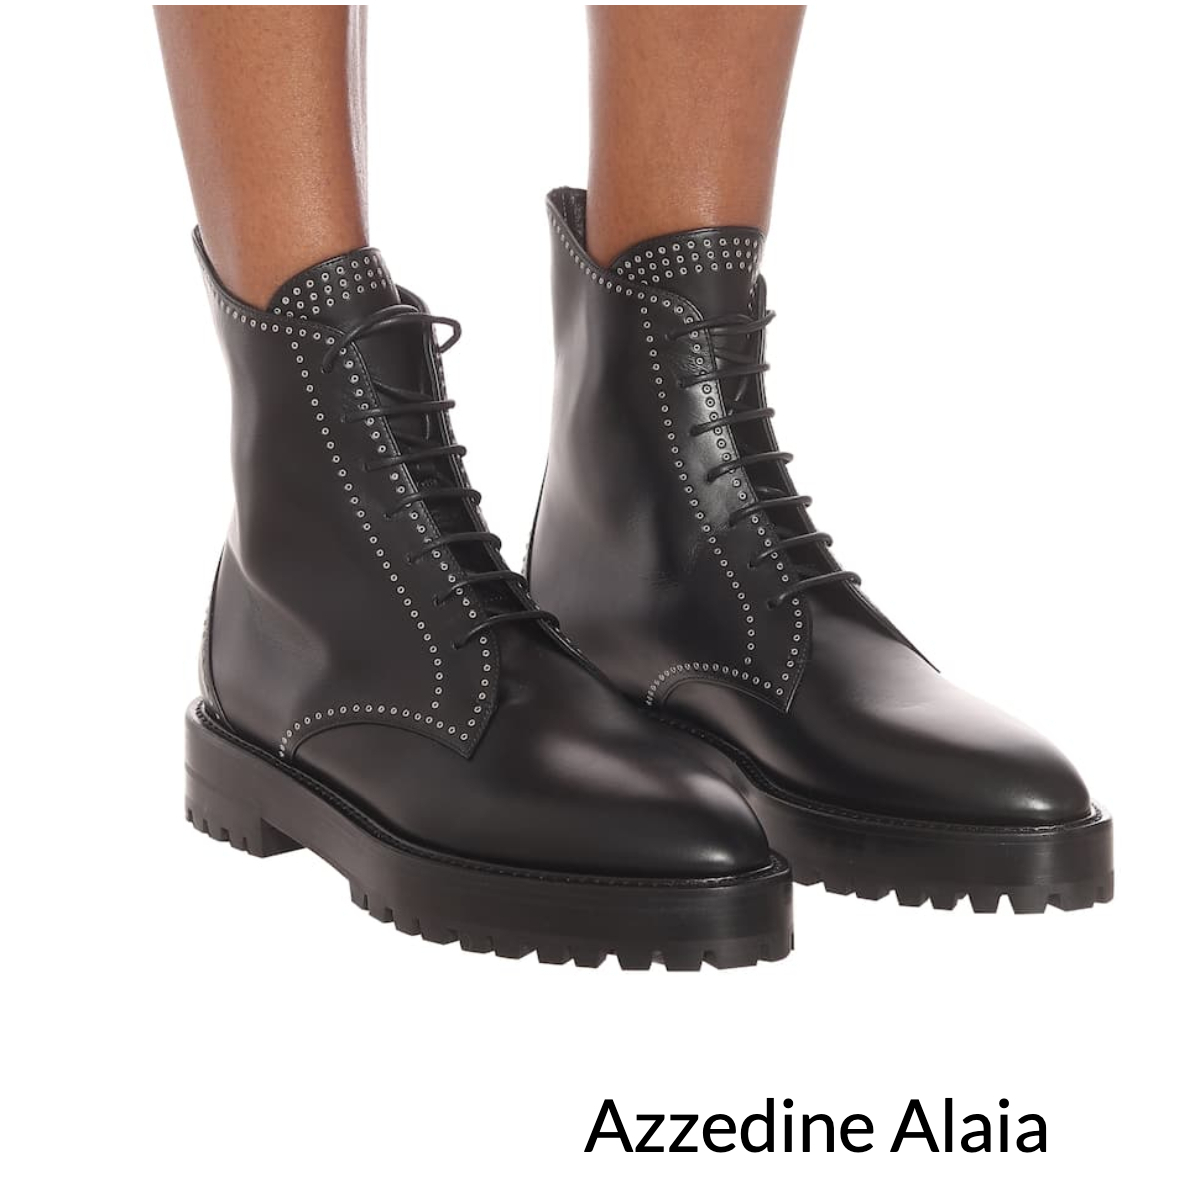 Azzedine Alaia 2020-21FW Boots Boots